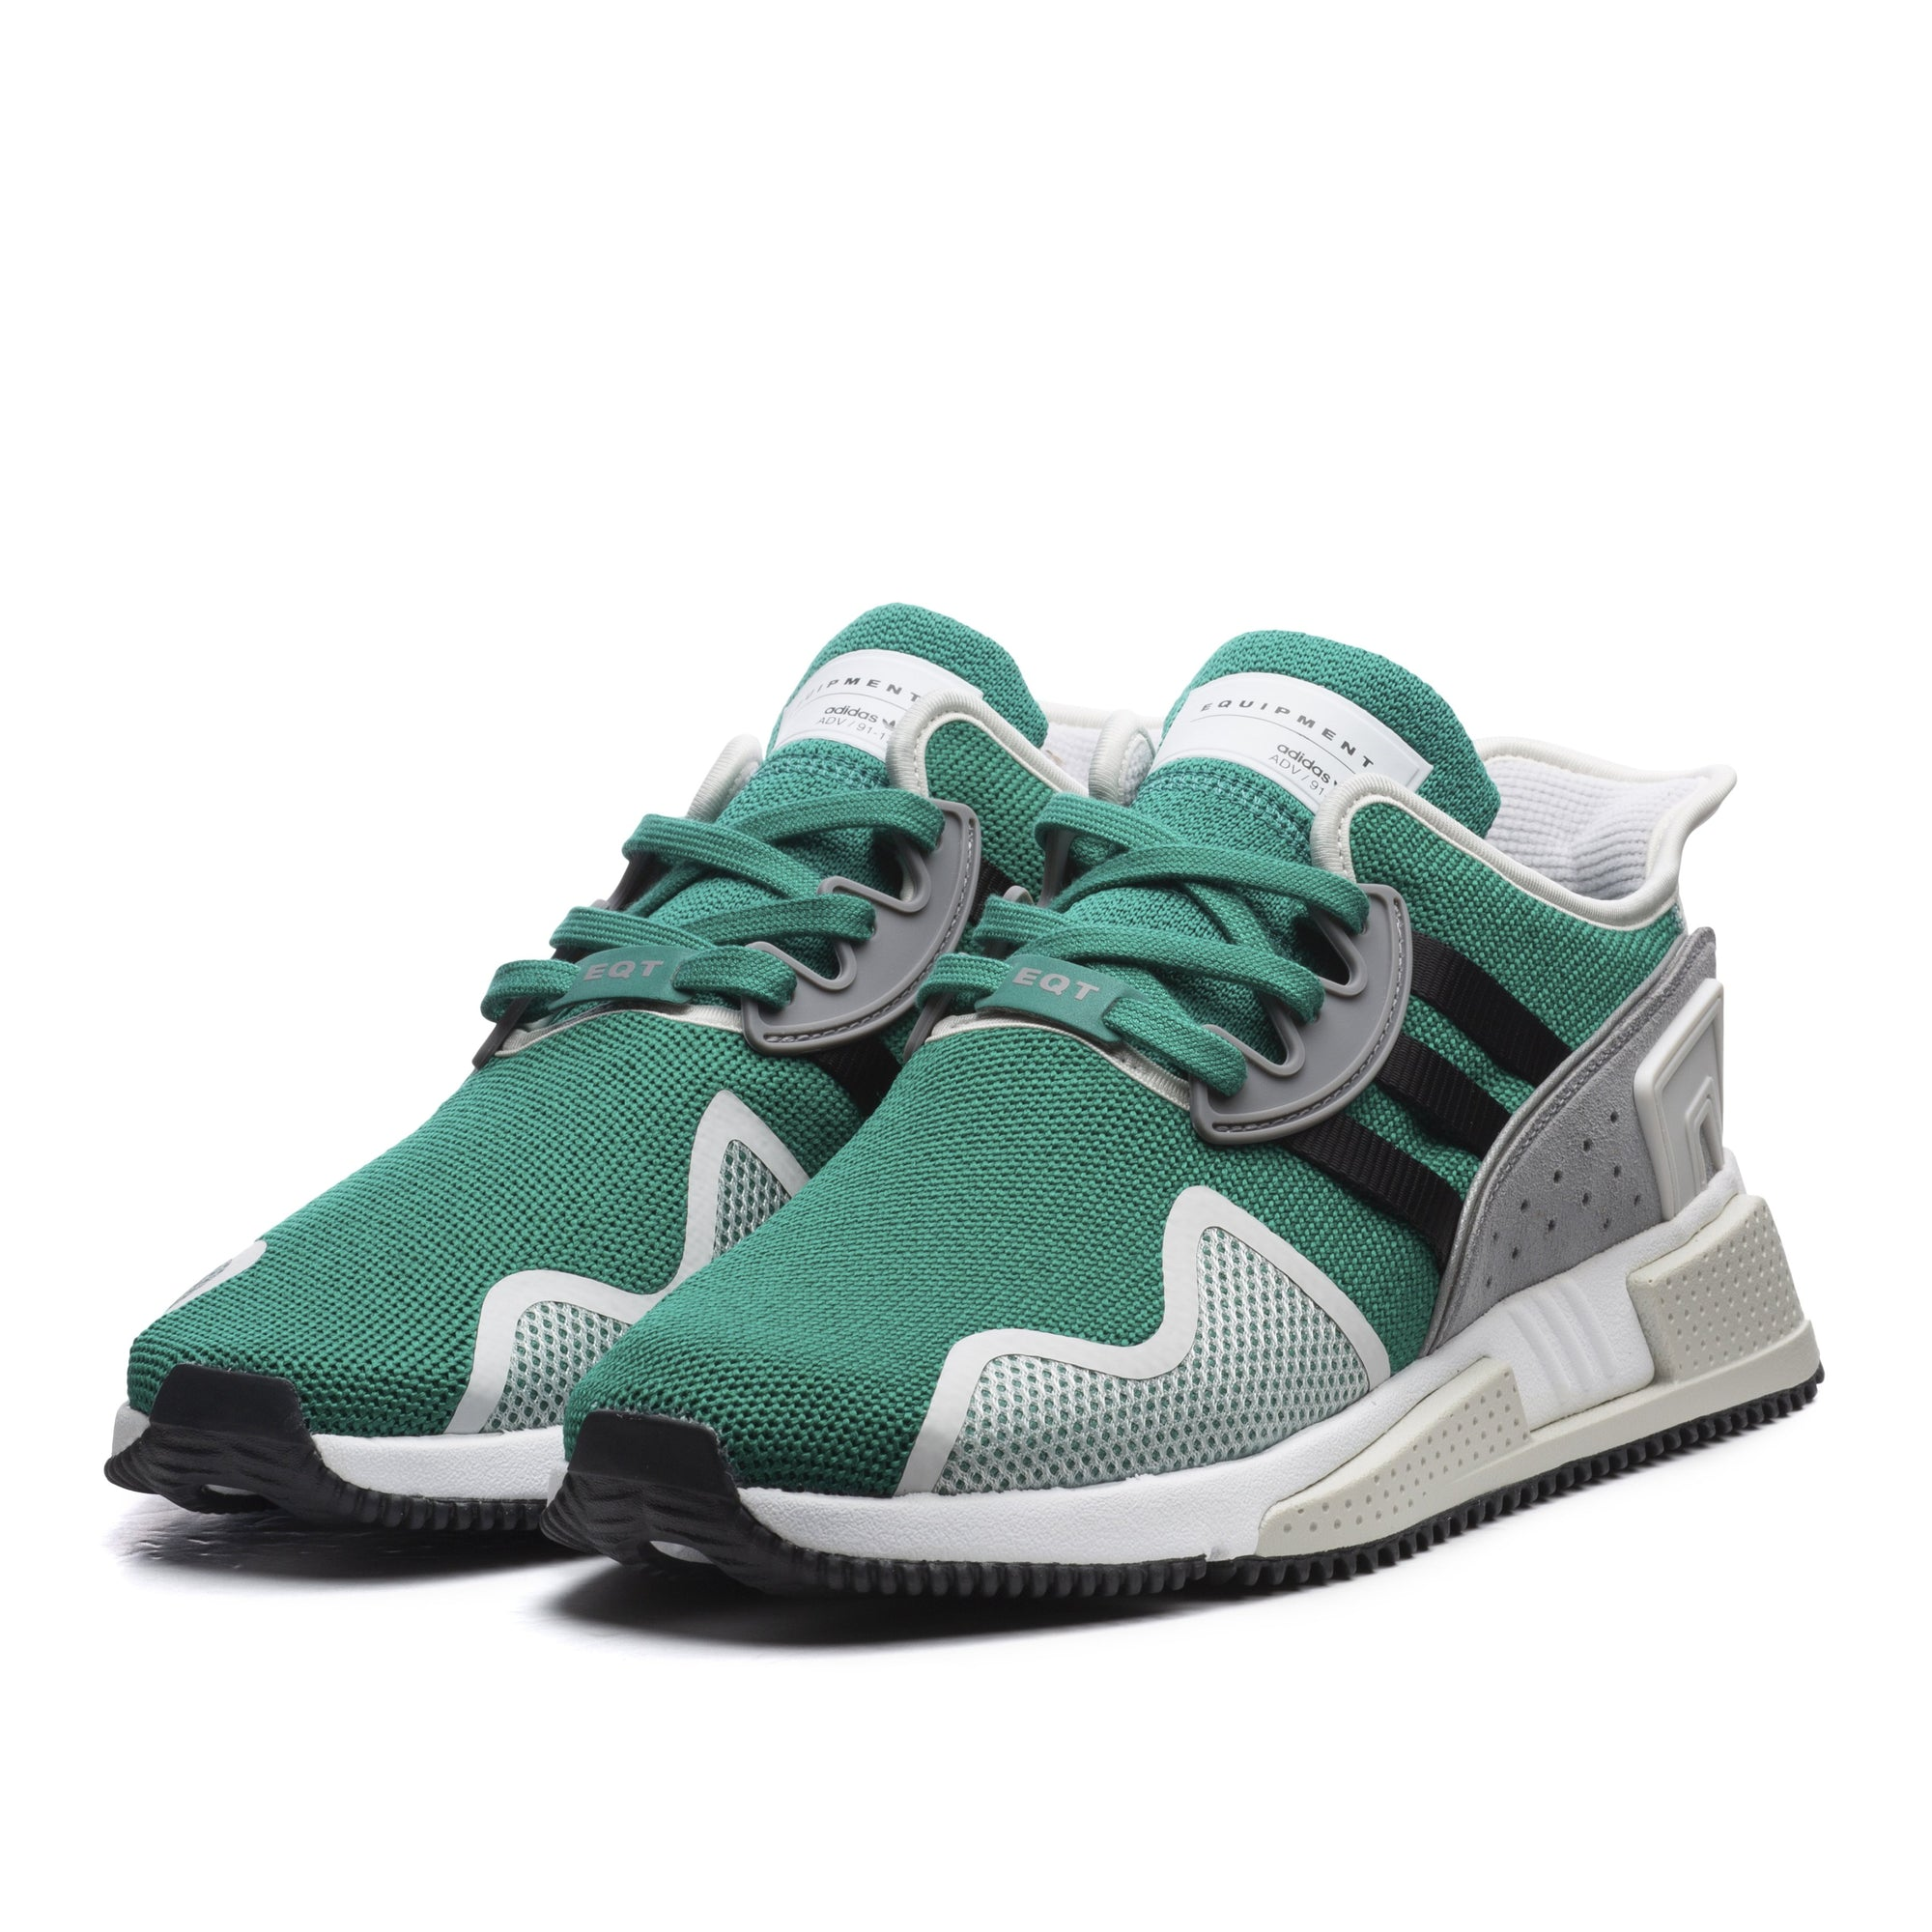 competitive price 33d2a 763a4 EQT Cushion ADV - The Good Life